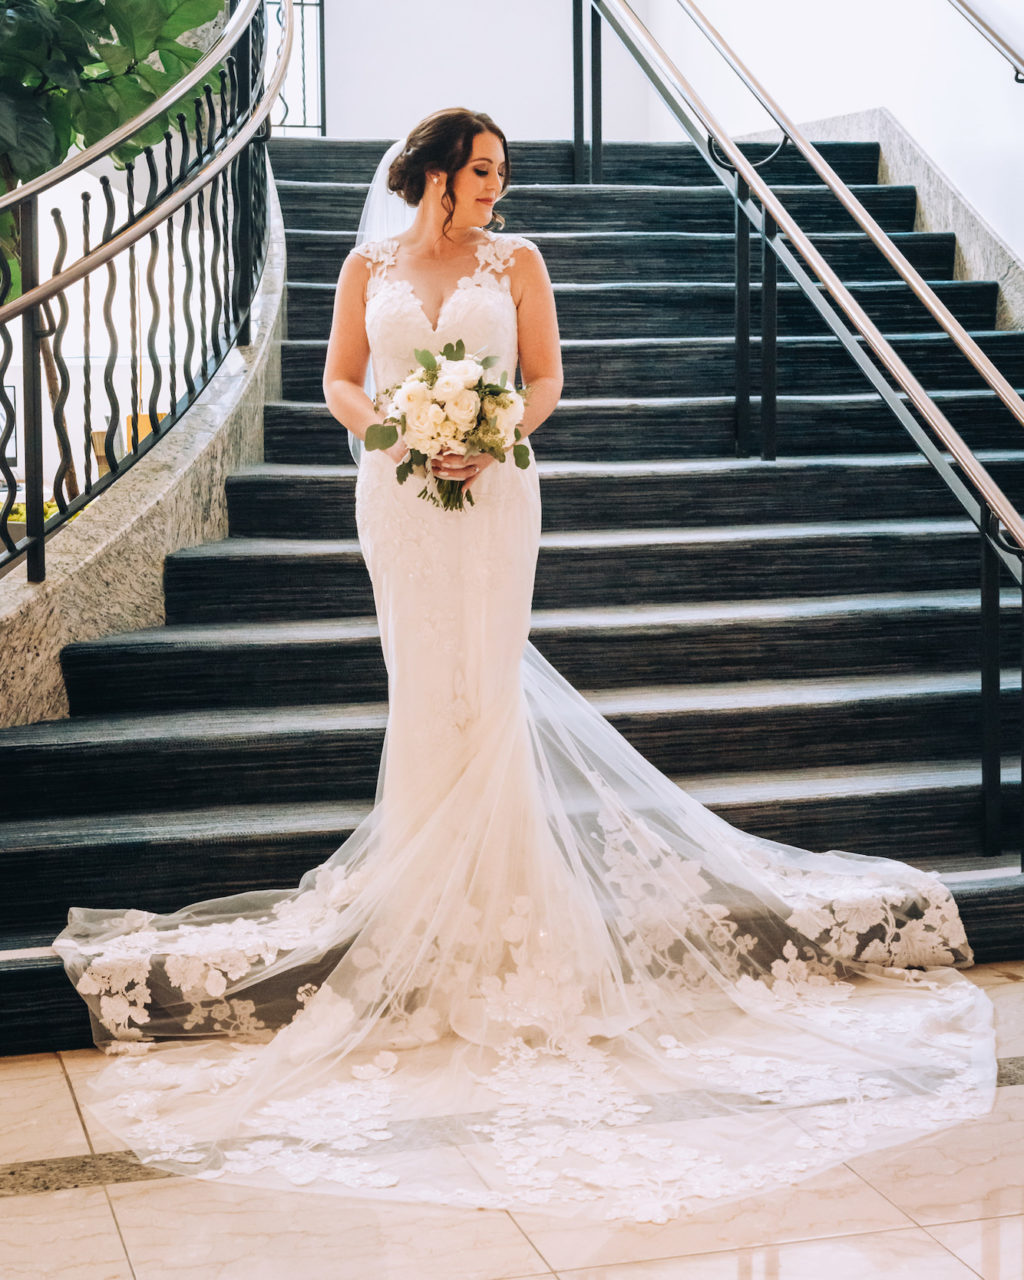 Indoor Bridal Portrait on Staircase | Lace Sheath V Neck Illusion Sleeve Bridal Gown Wedding Dress with Sheer Embroidered Train | Simple White Rose Wedding Bouquet with Eucalyptus Greenery | Femme Akoi Beauty Studio | Bonnie Newman Creative